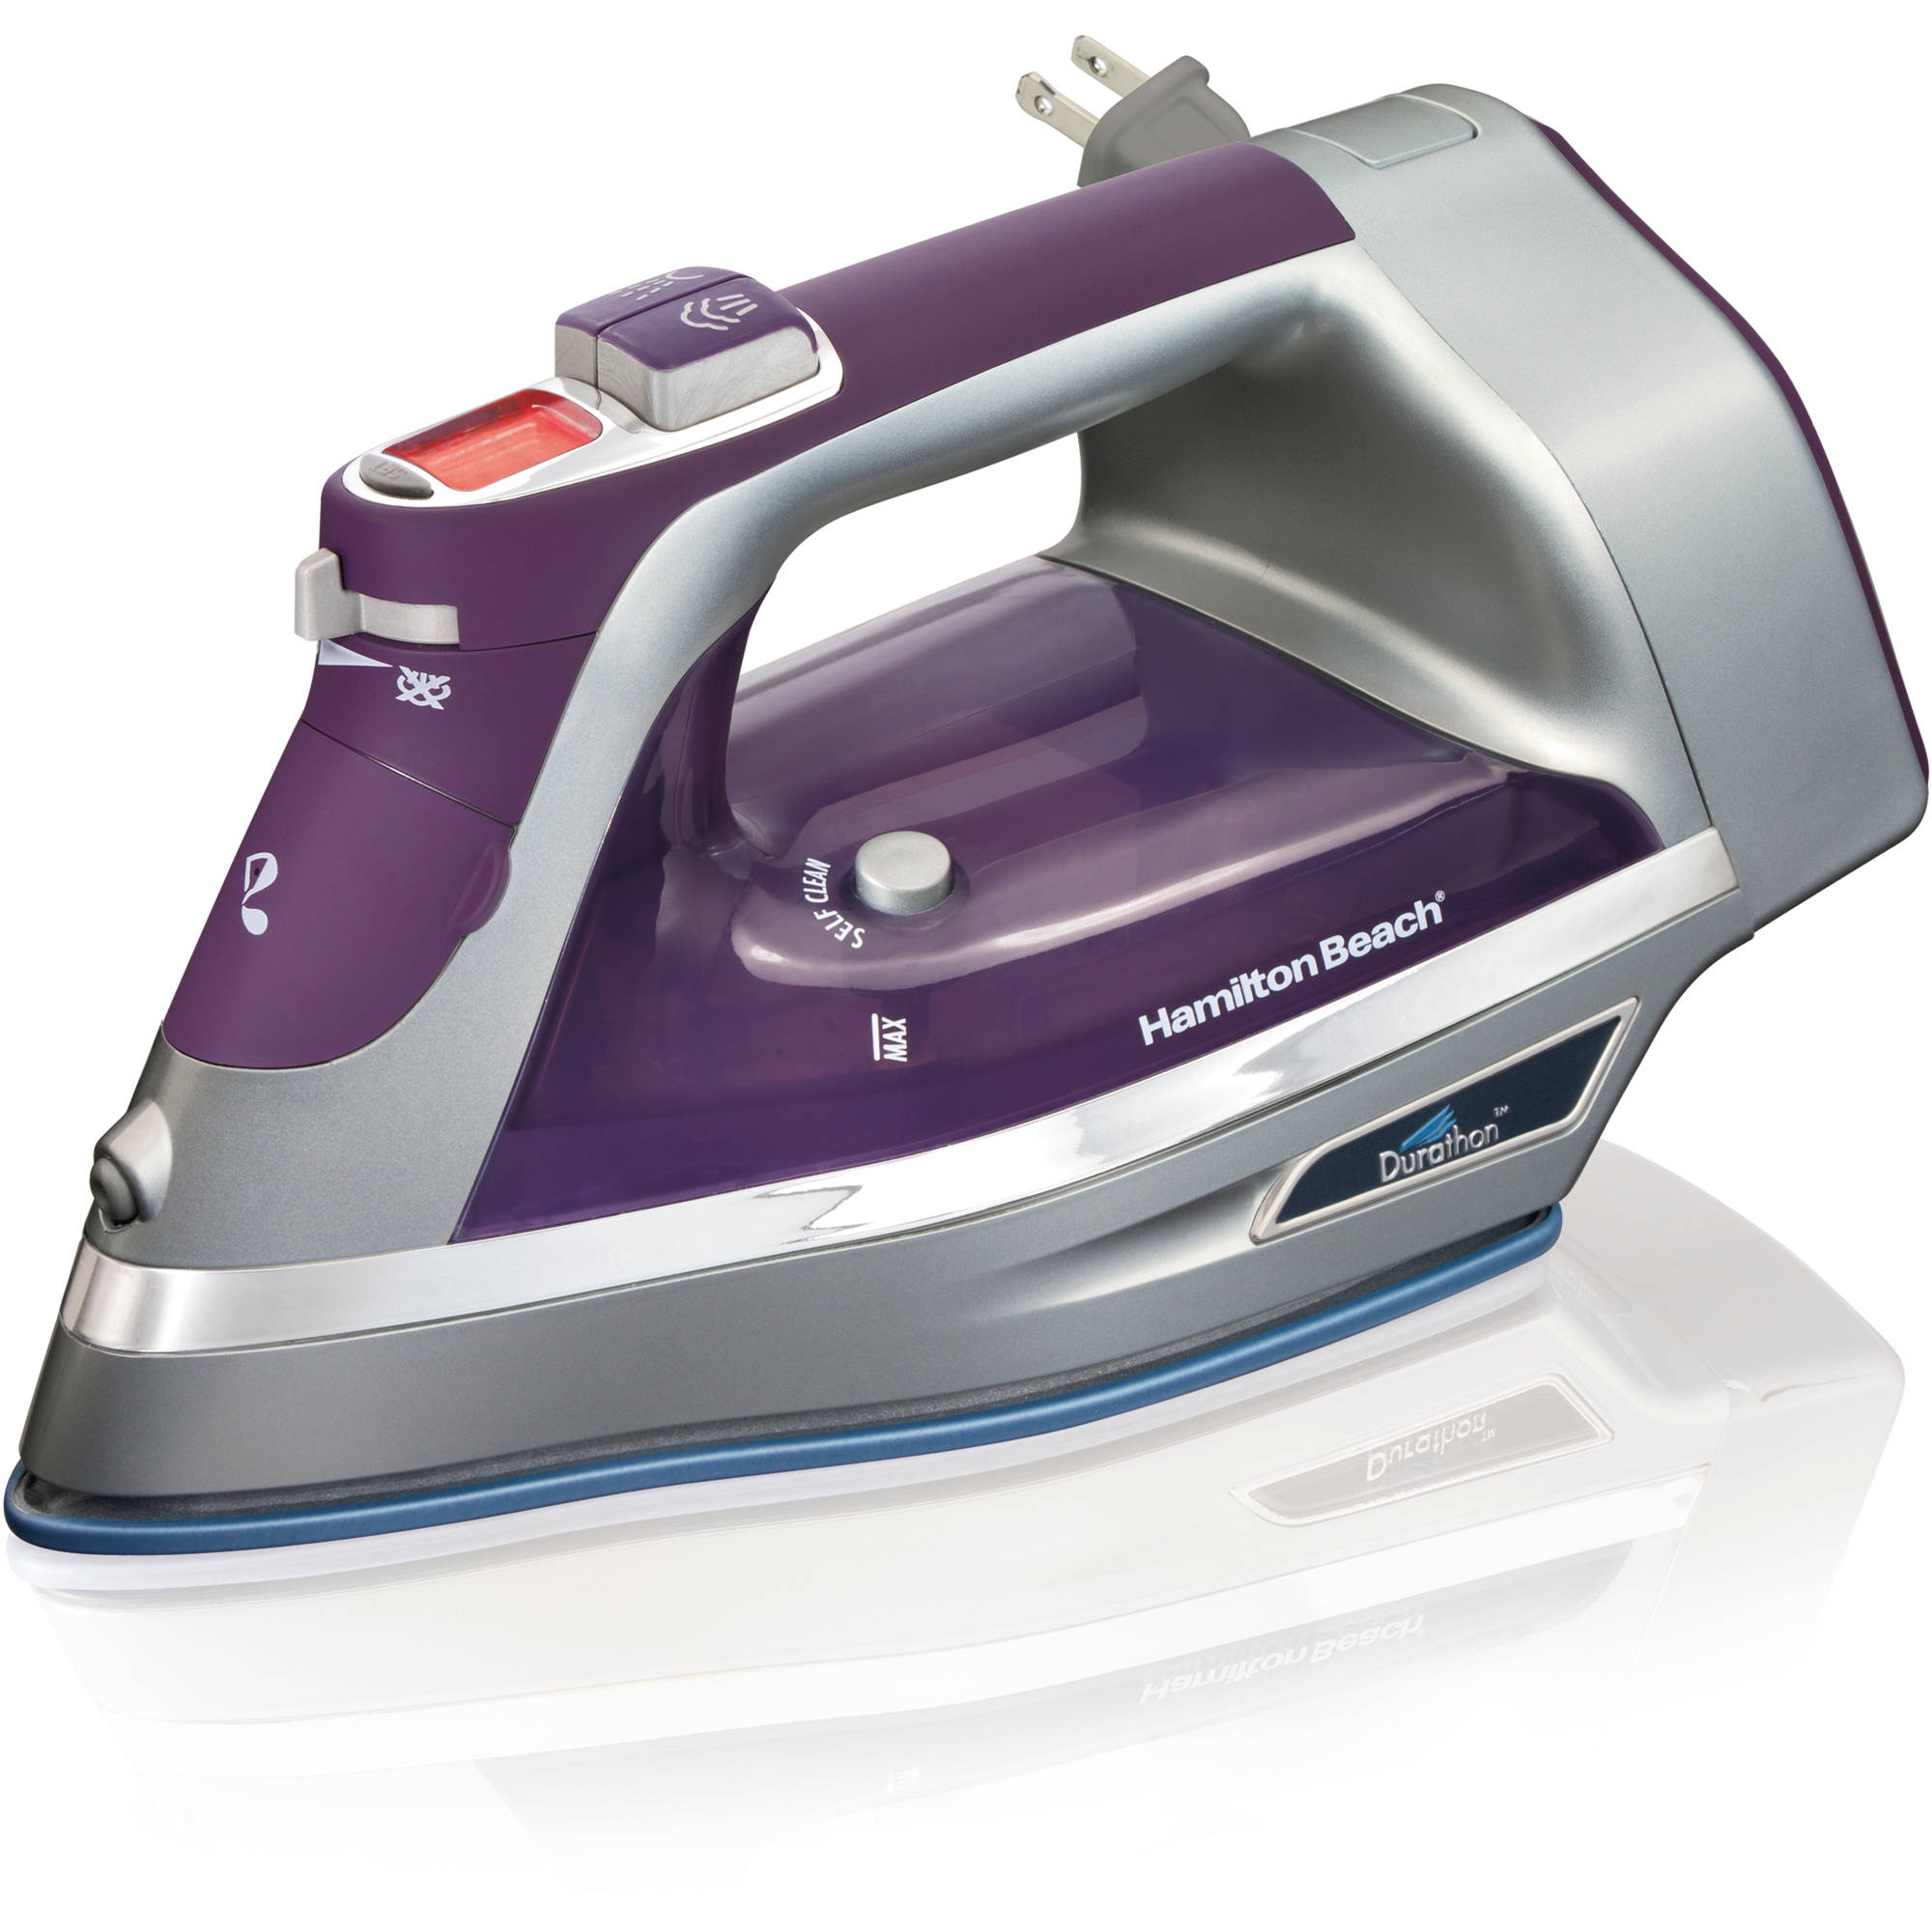 Hamilton Beach Durathon Digital Retractable Cord Iron, Purple